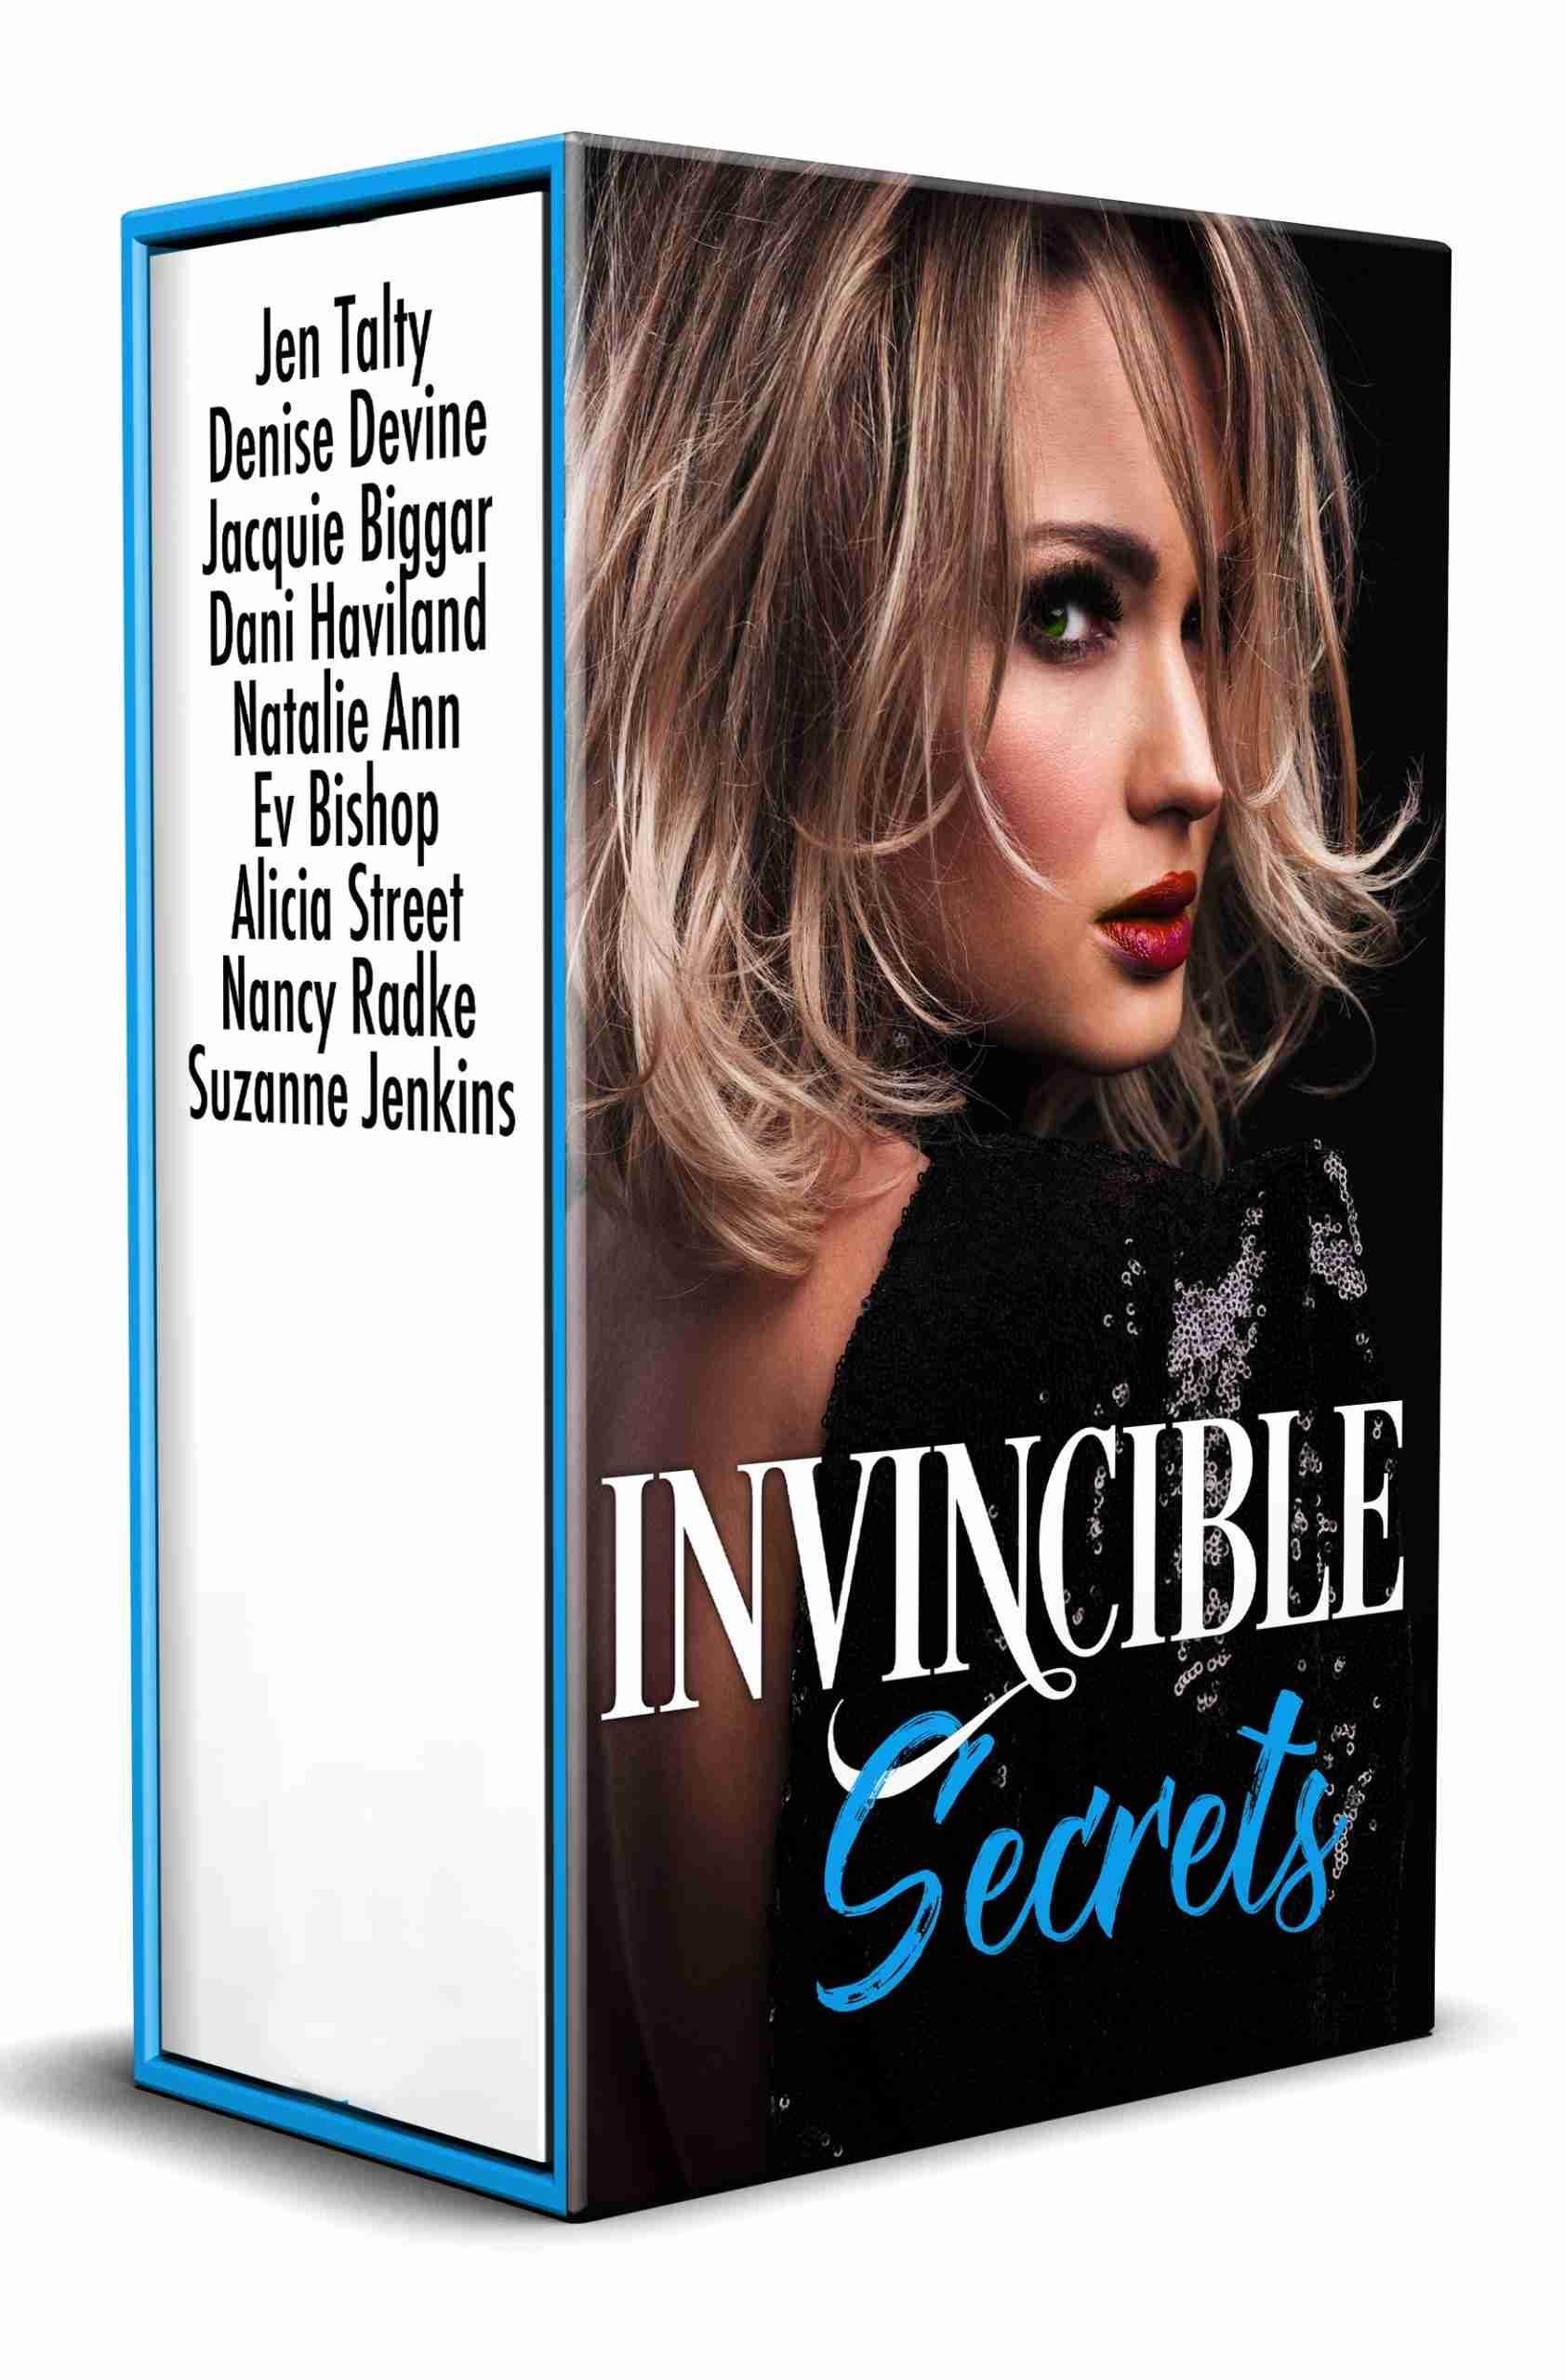 Invincible Secrets